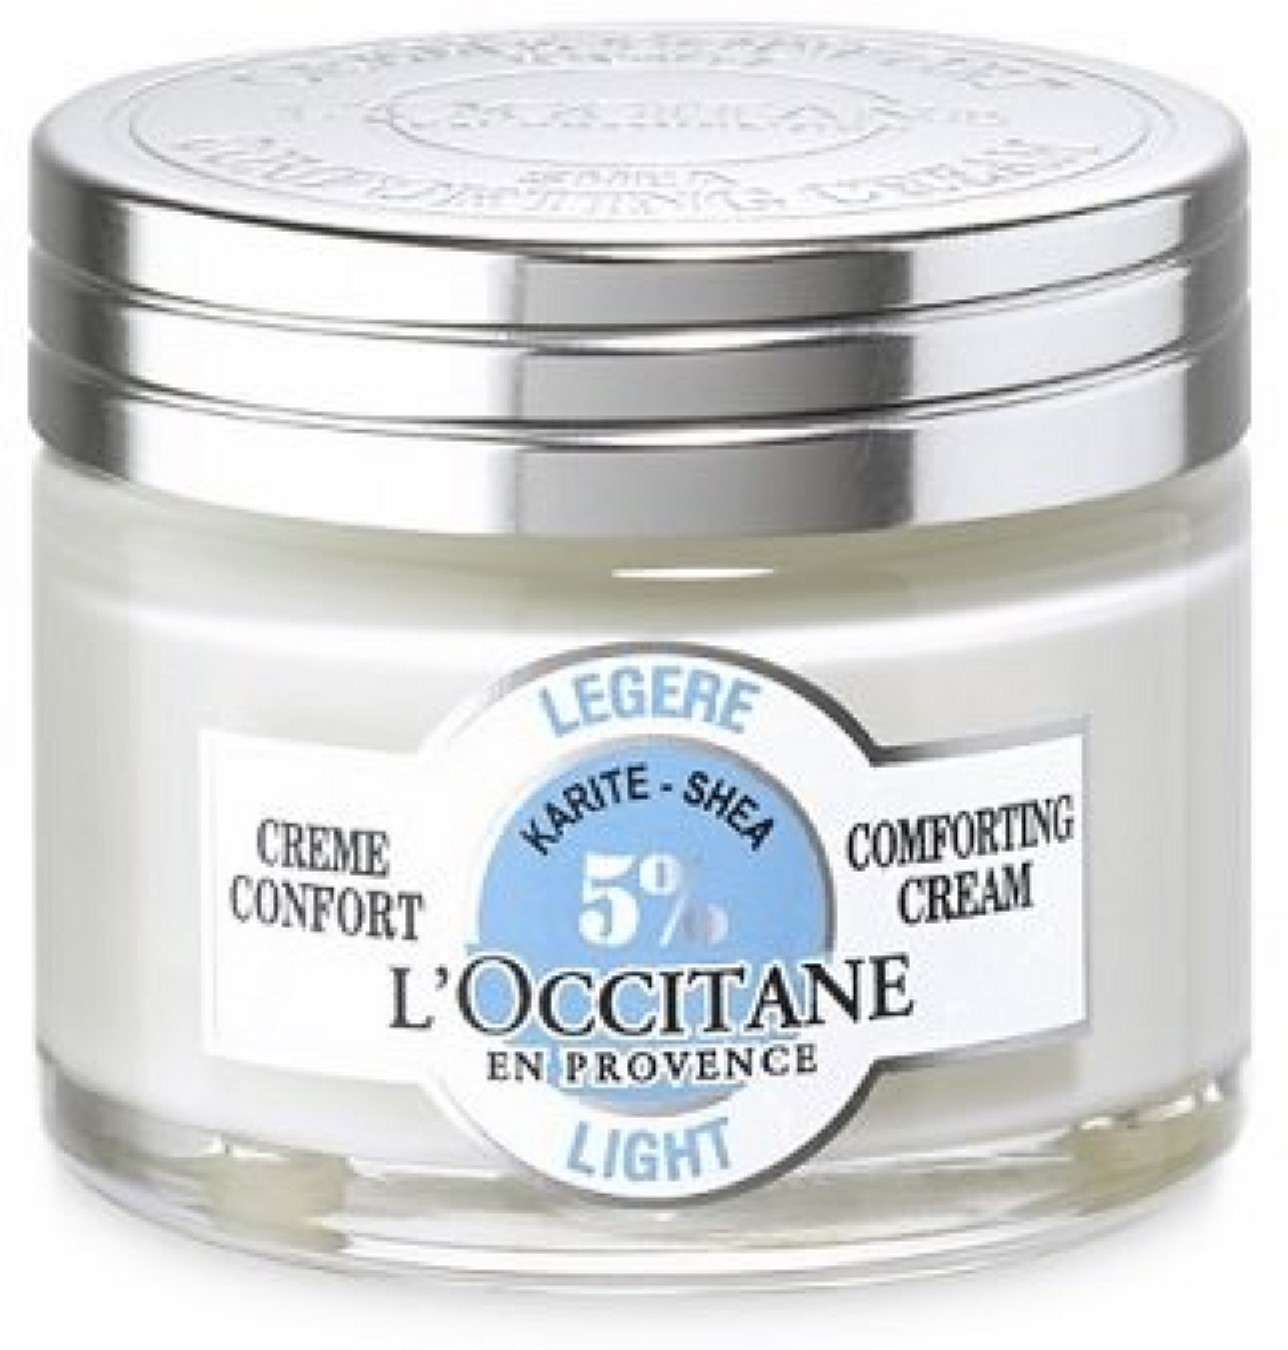 2 Pack - L'Occitane Light 5% Shea Butter Face Cream for Normal to Combination Skin 1.7 oz